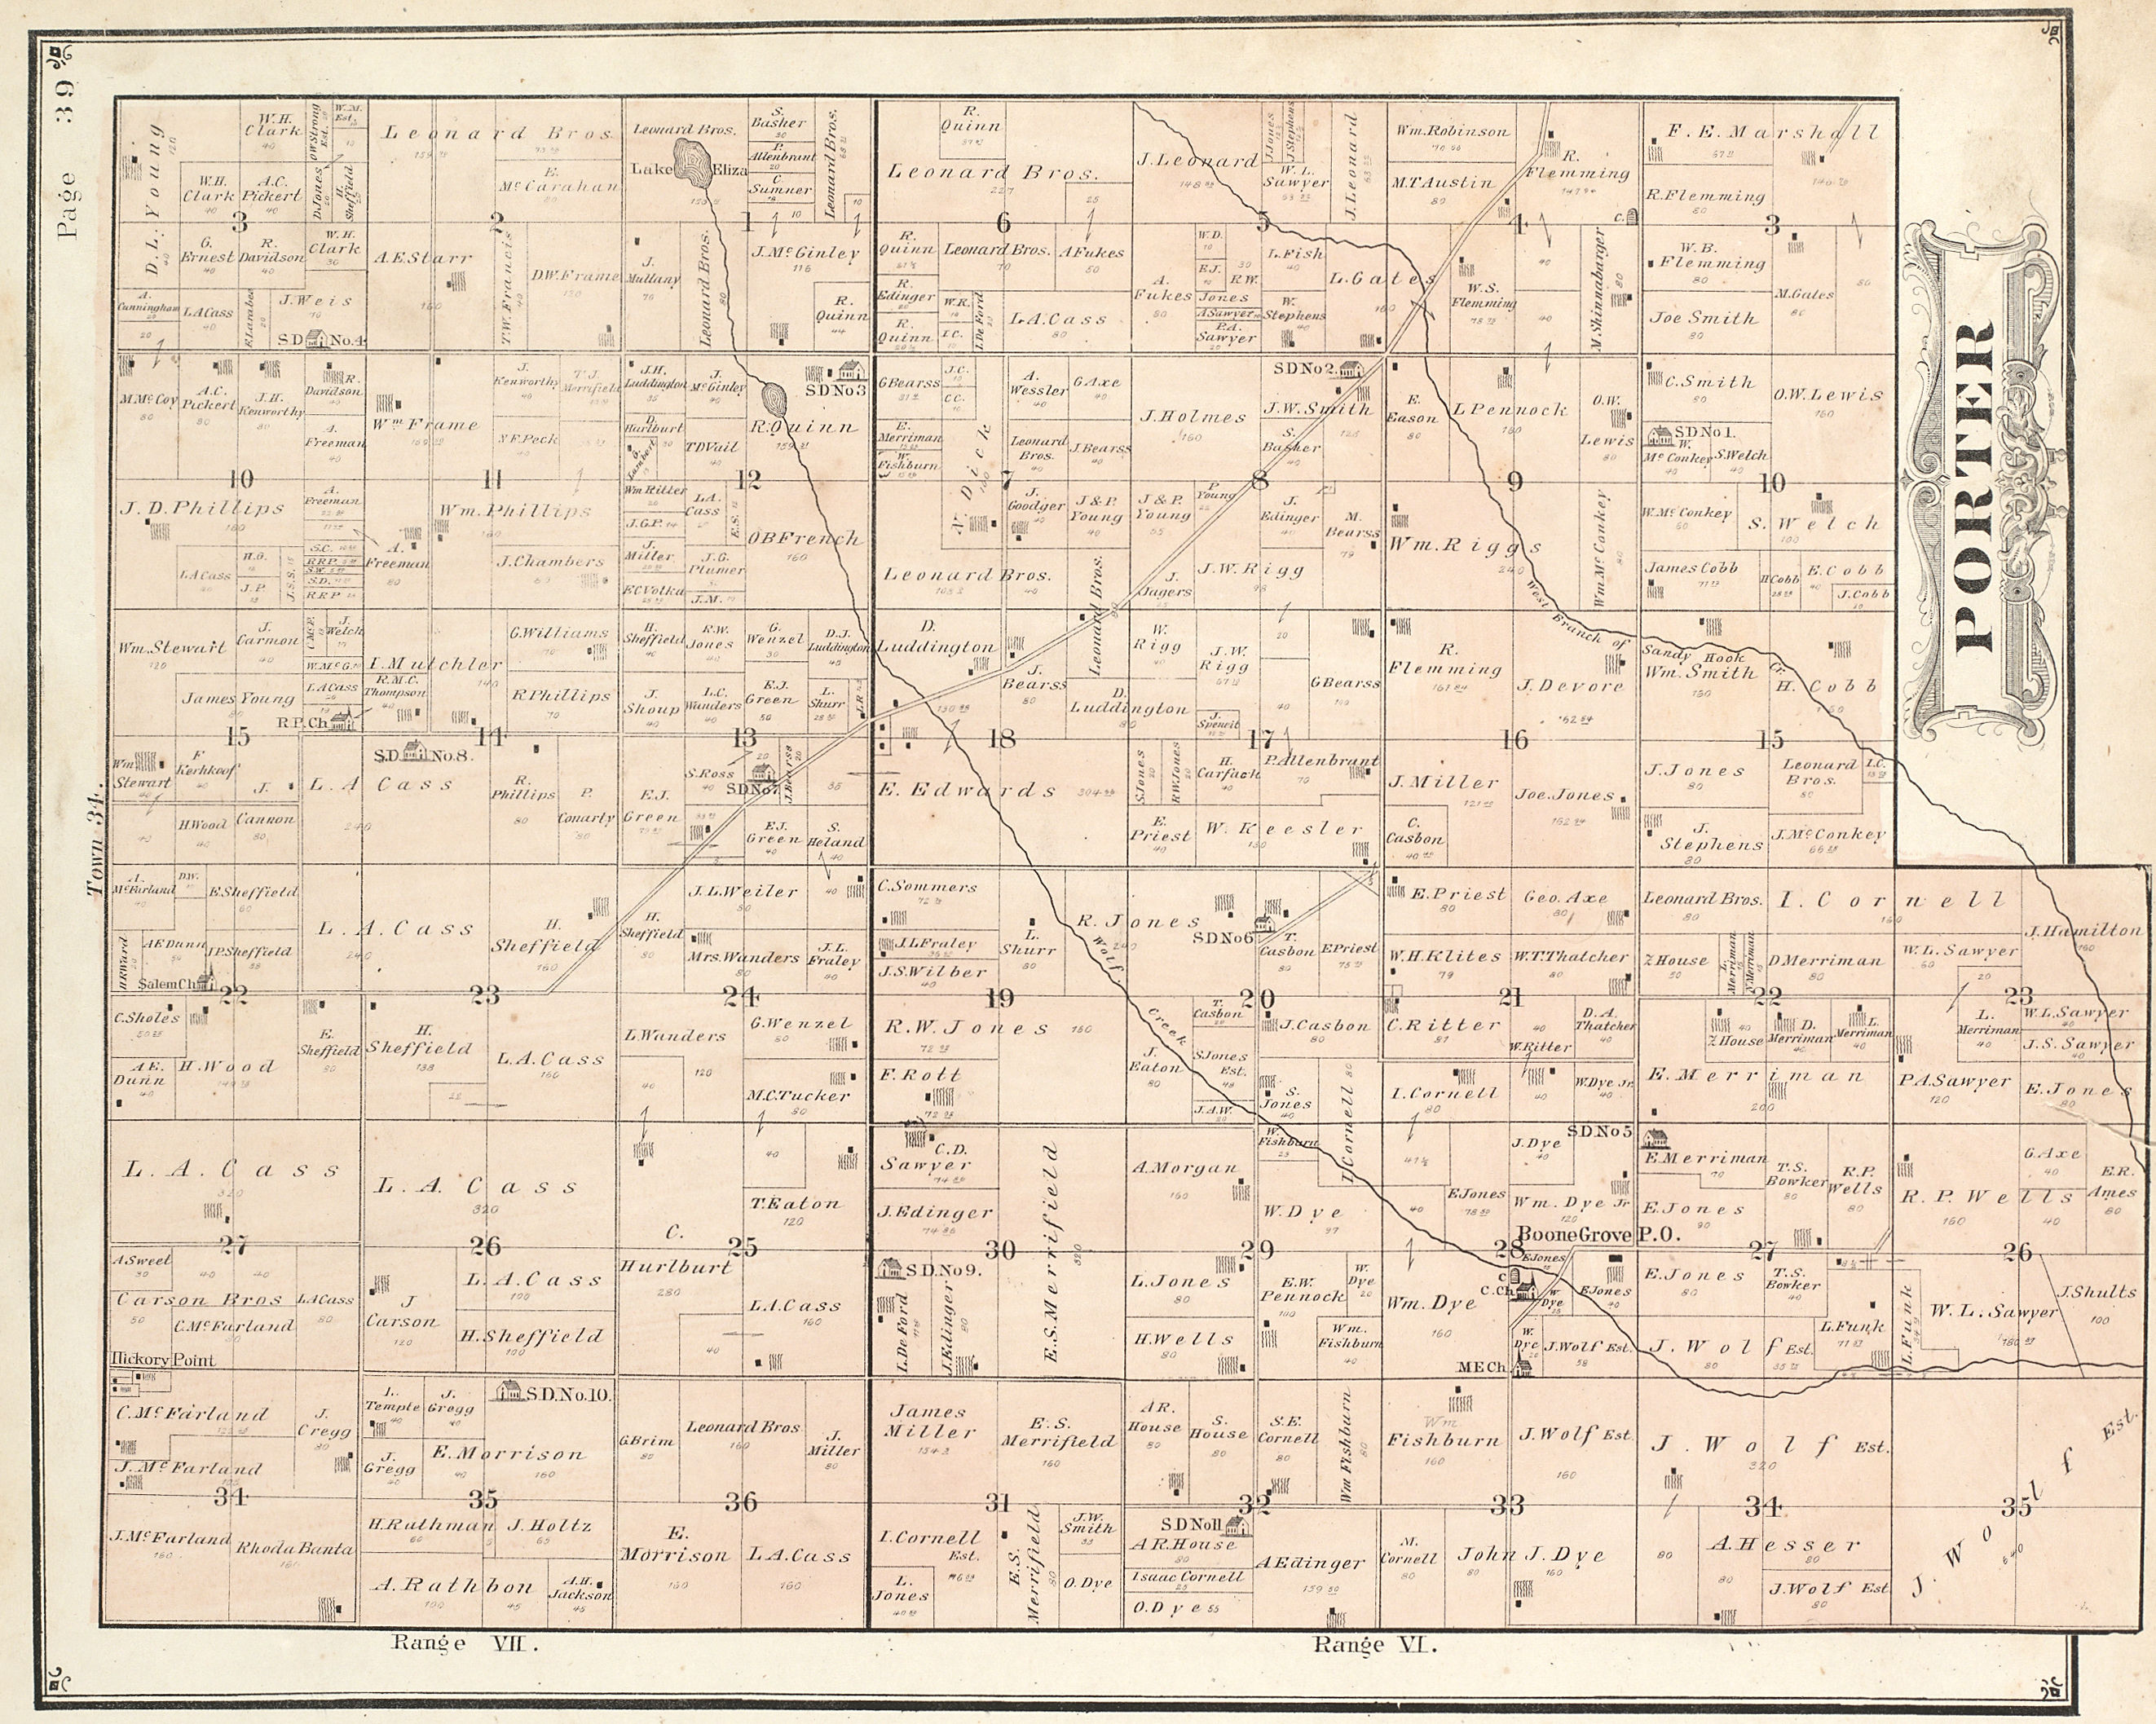 Porter County Indiana Genweb Township Plat Maps 1876